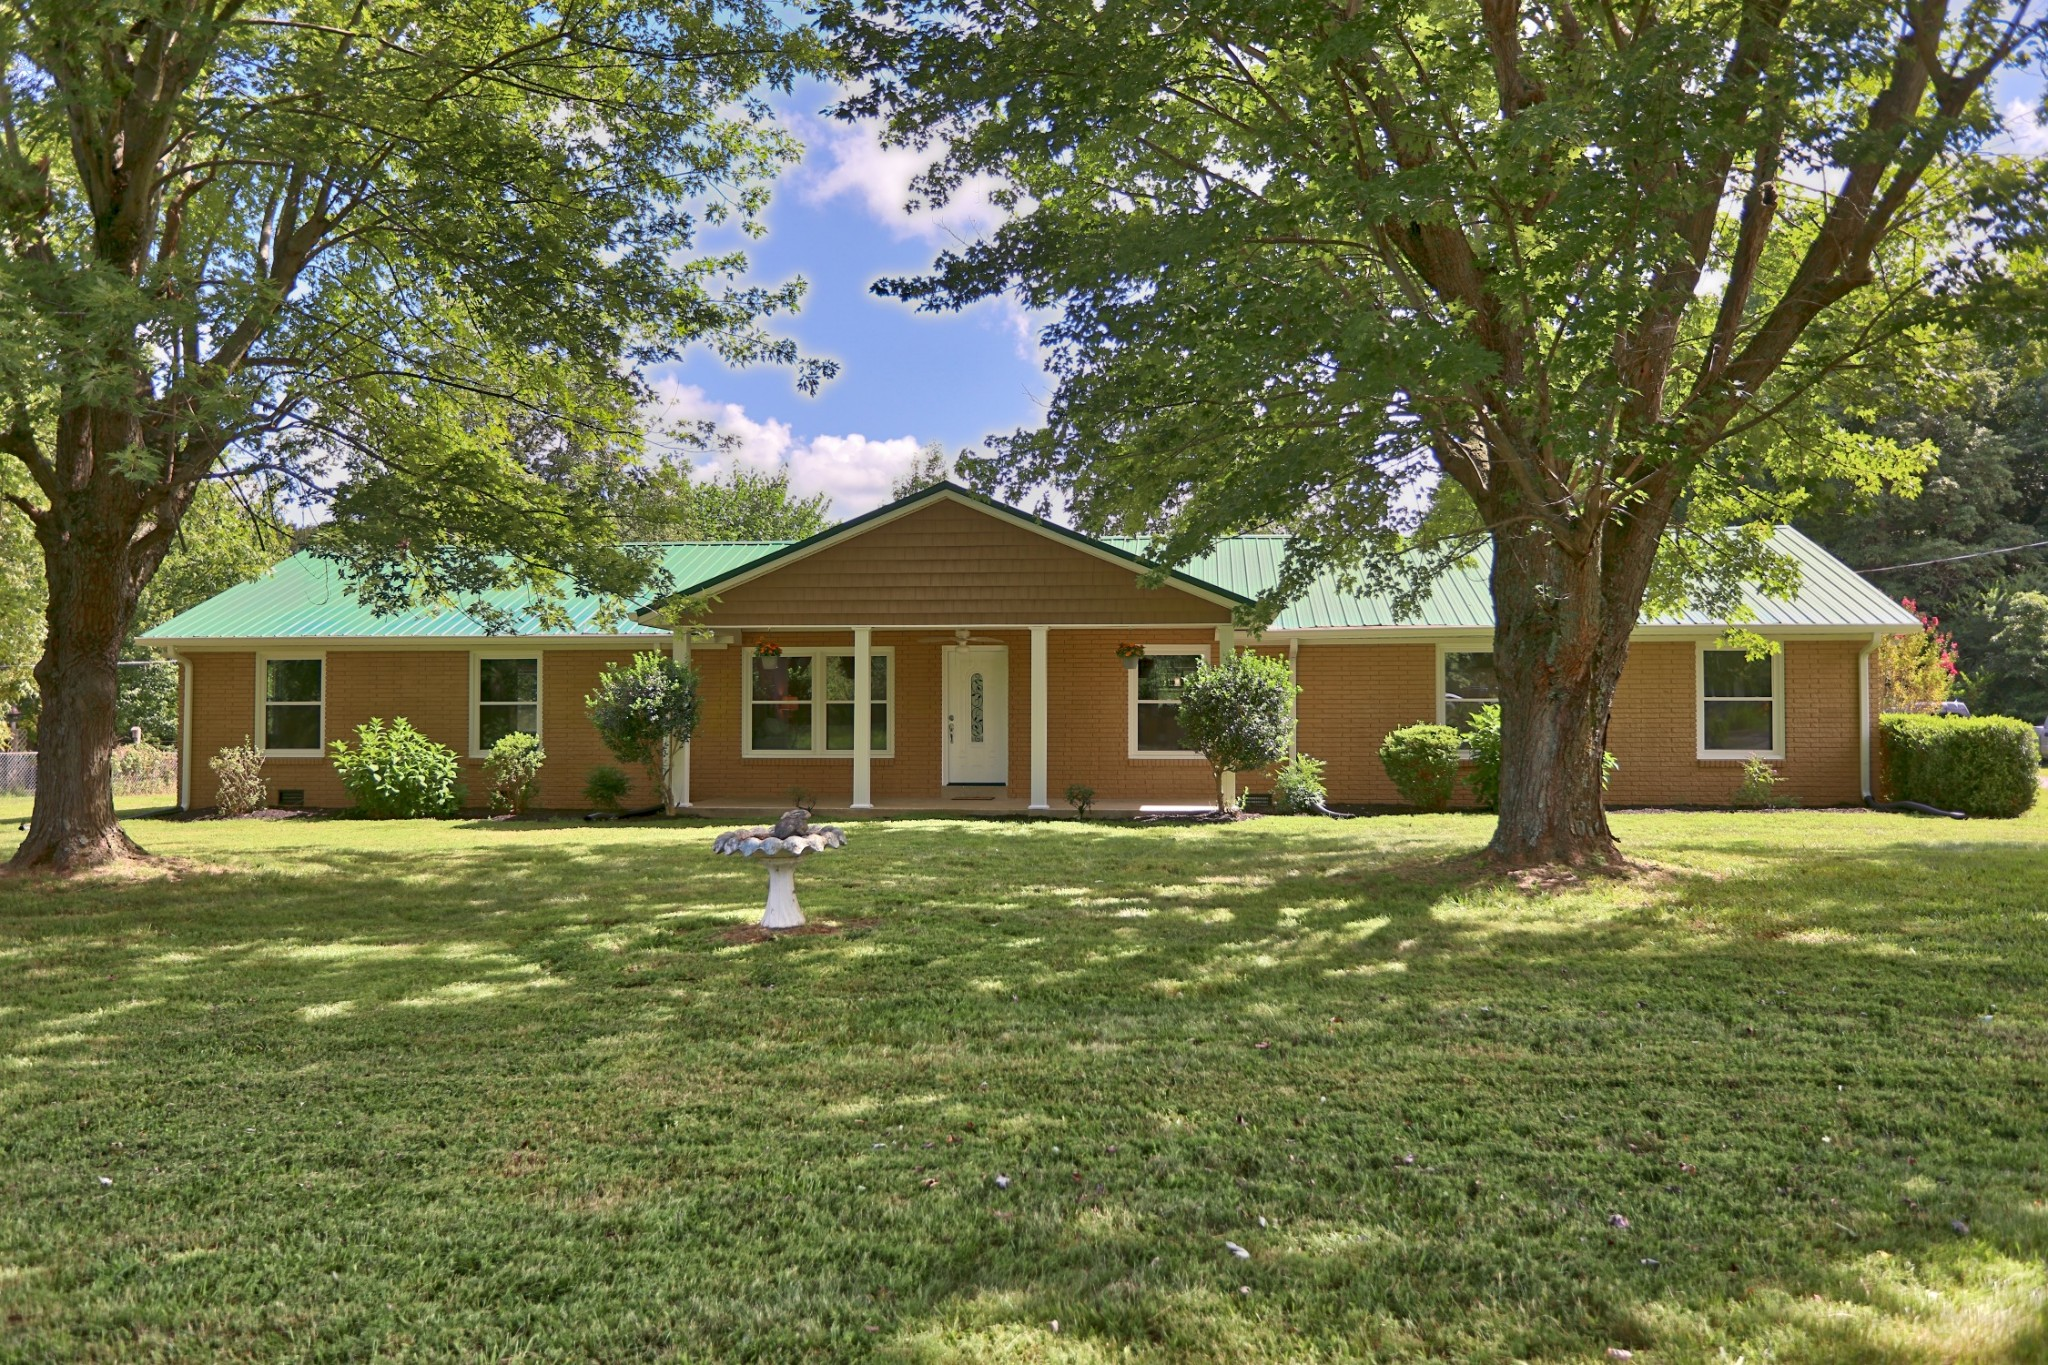 156 New Deal Potts Rd Property Photo - Cottontown, TN real estate listing